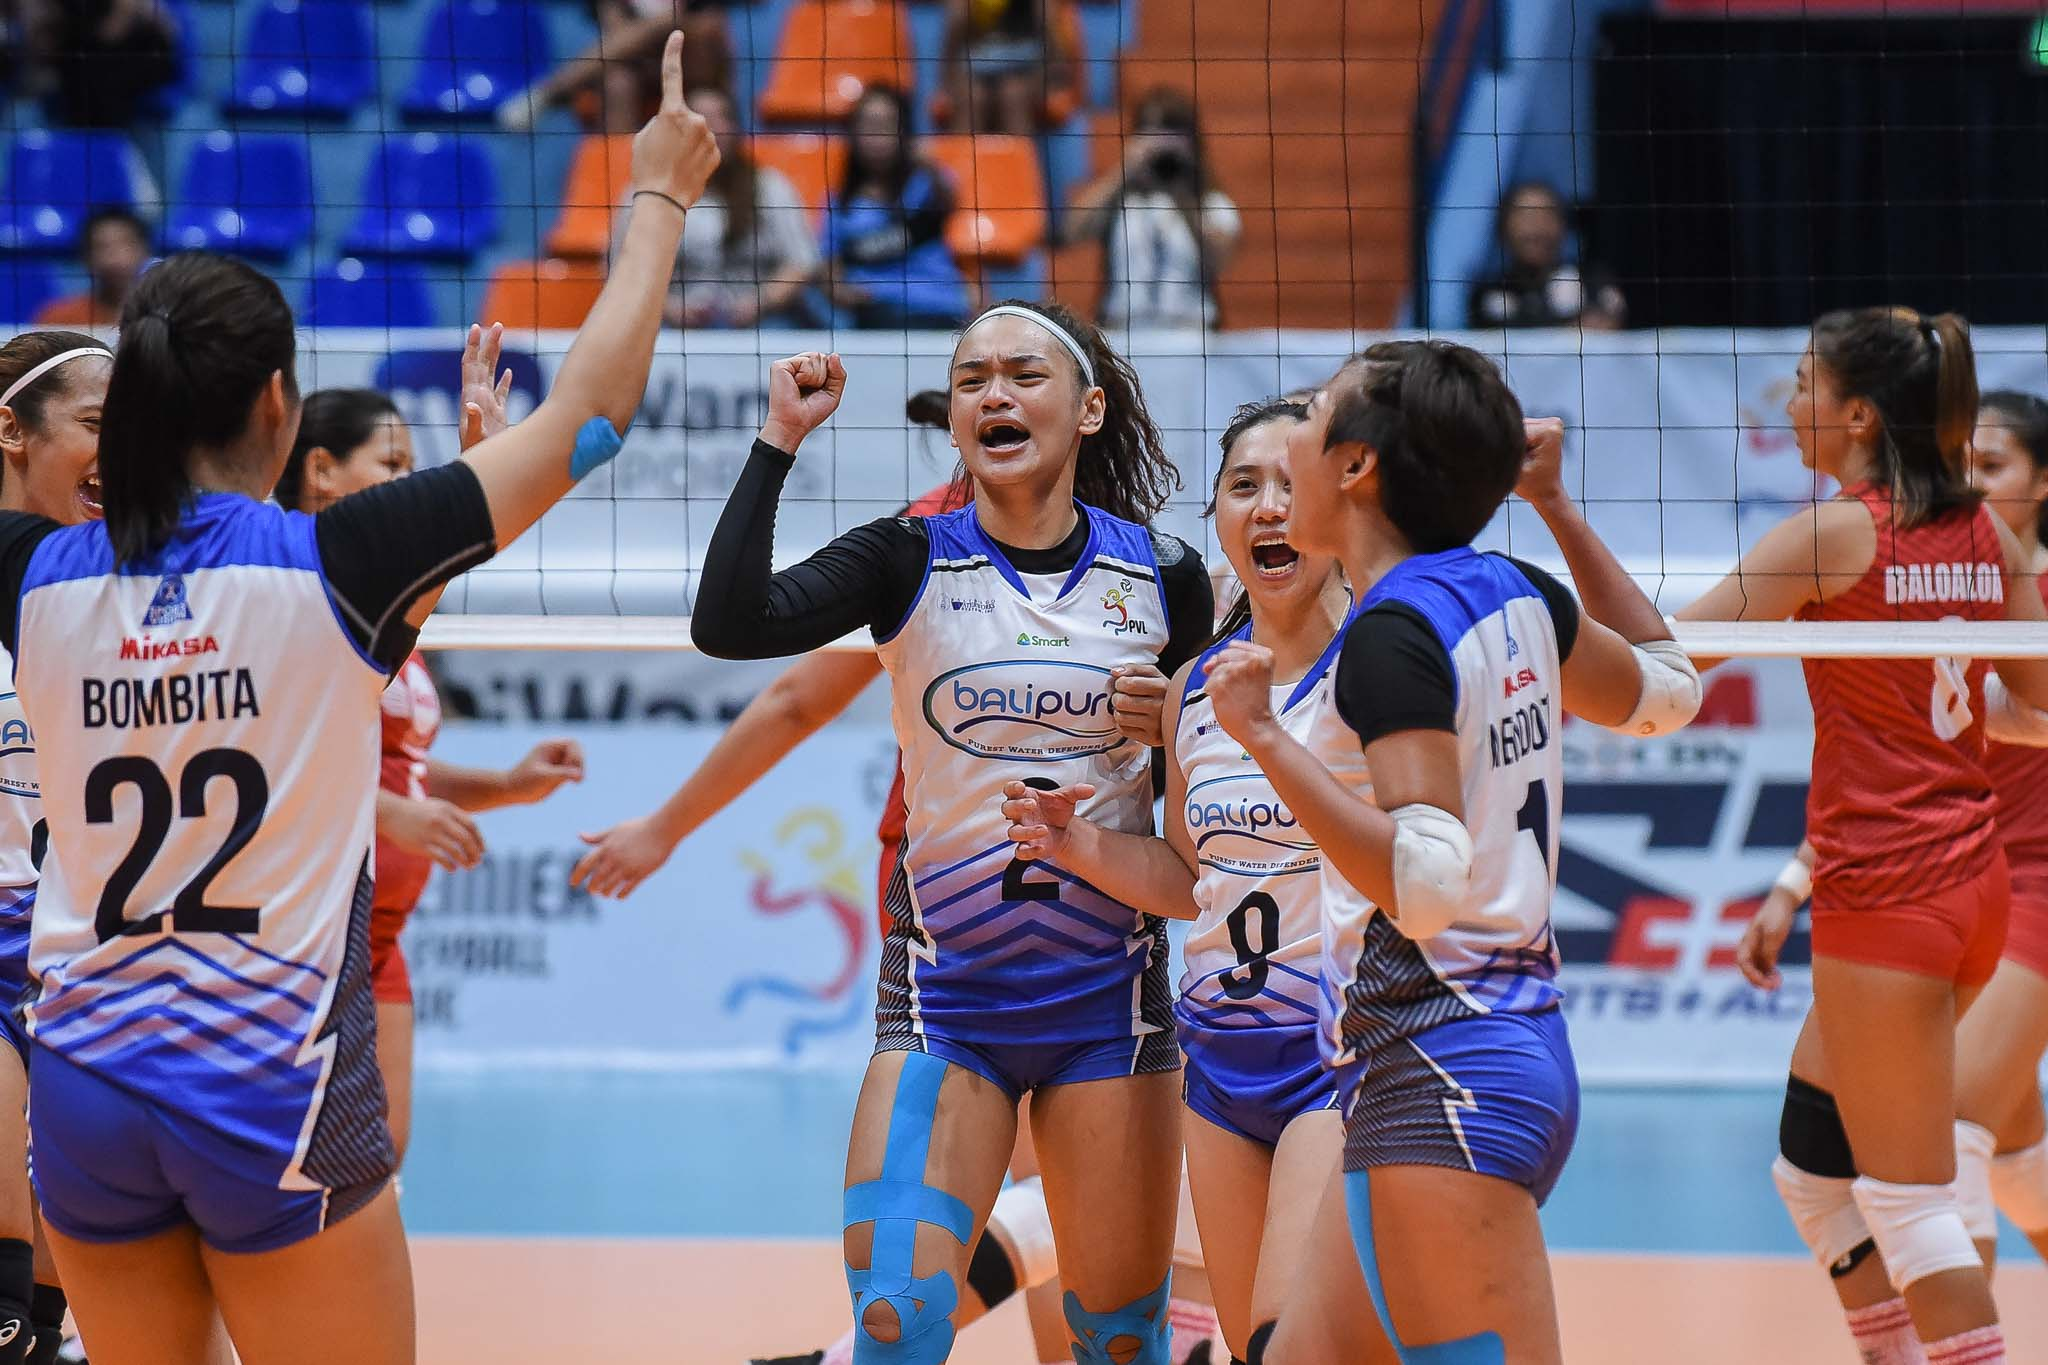 PVL-Open-Conference-2019-Petrogazz-vs.-Balipure-Espiritu-0886 Graze Bombita excited to lead young BaliPure in stacked PVL field News PVL Volleyball  - philippine sports news